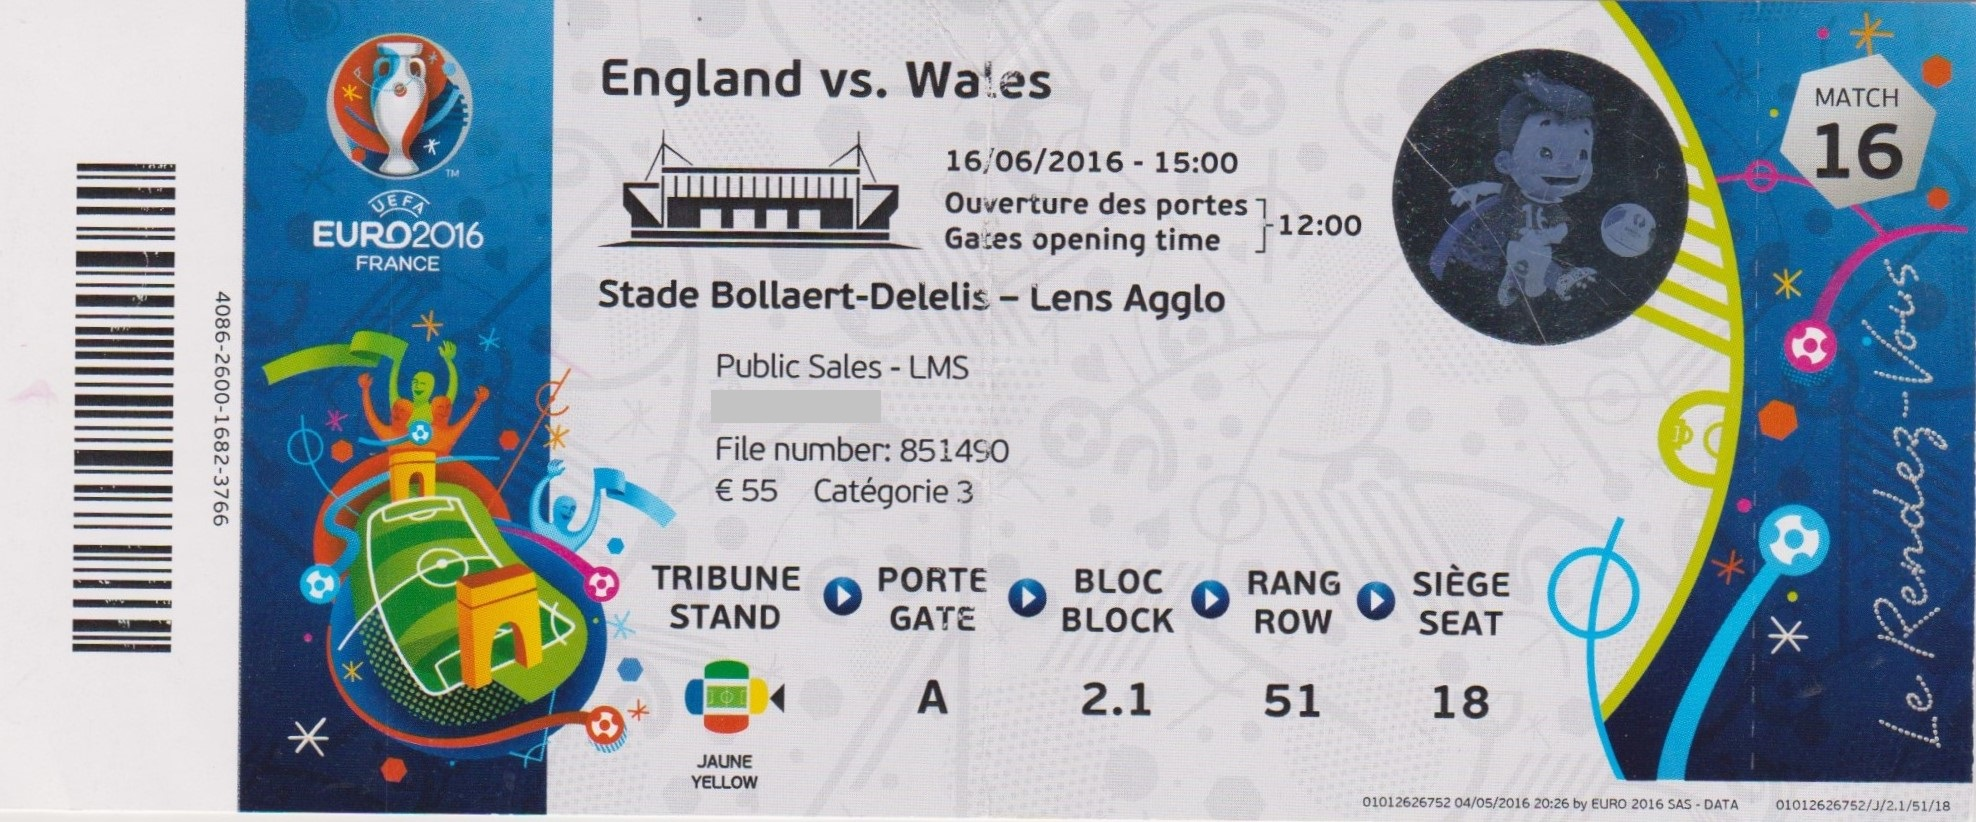 16/06/2016  Lens :  Angleterre  2 - 1  Pays de Galles  > Vardy, Sturridge  (Ang) -- Bale (PdG) <